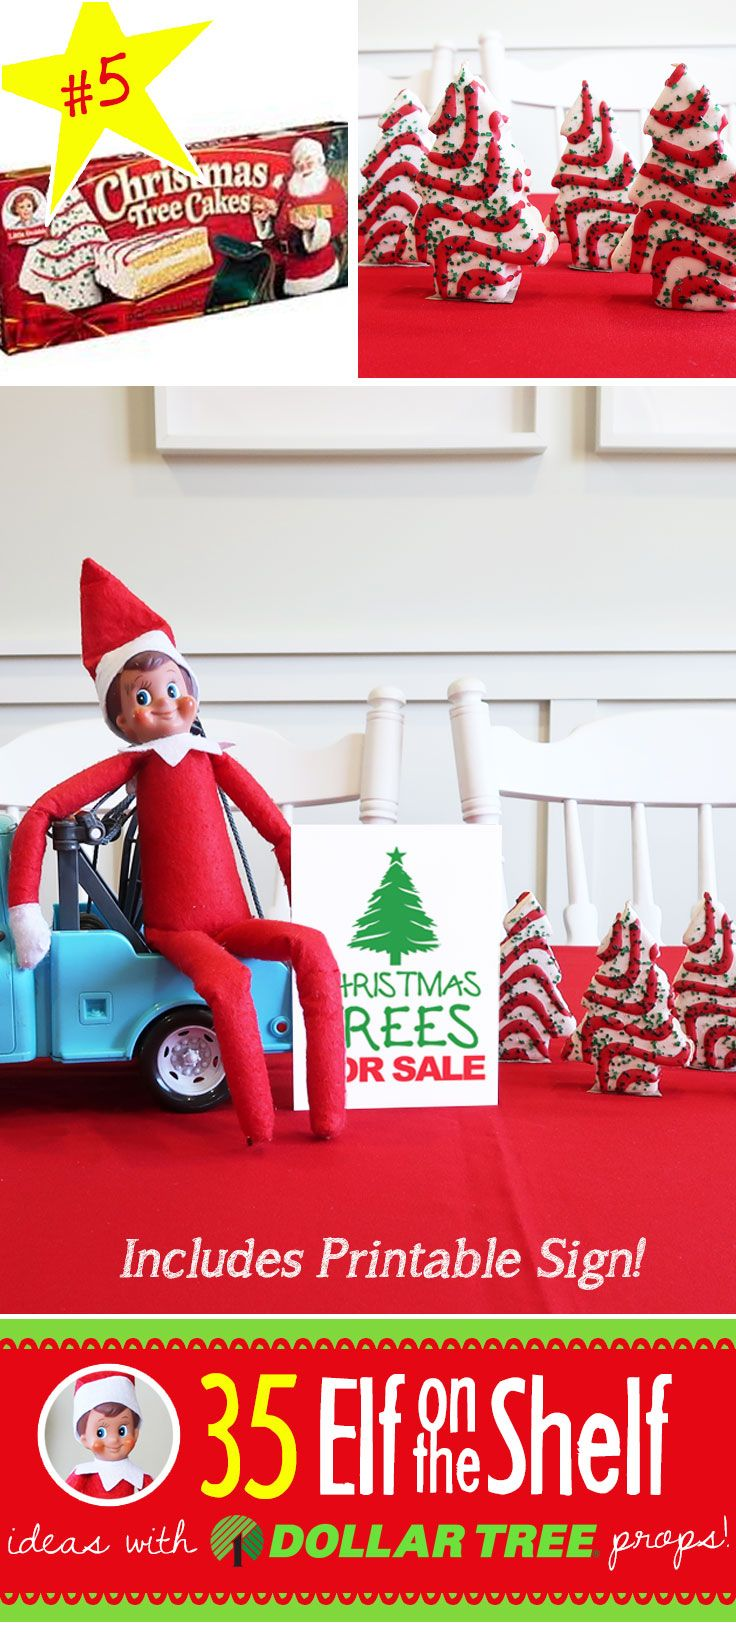 35 All New Elf On The Shelf Ideas For This Year These Fun Creative Easy Ideas All Include An Item Christmas Tree Sale Elf Christmas Tree Elf On The Shelf